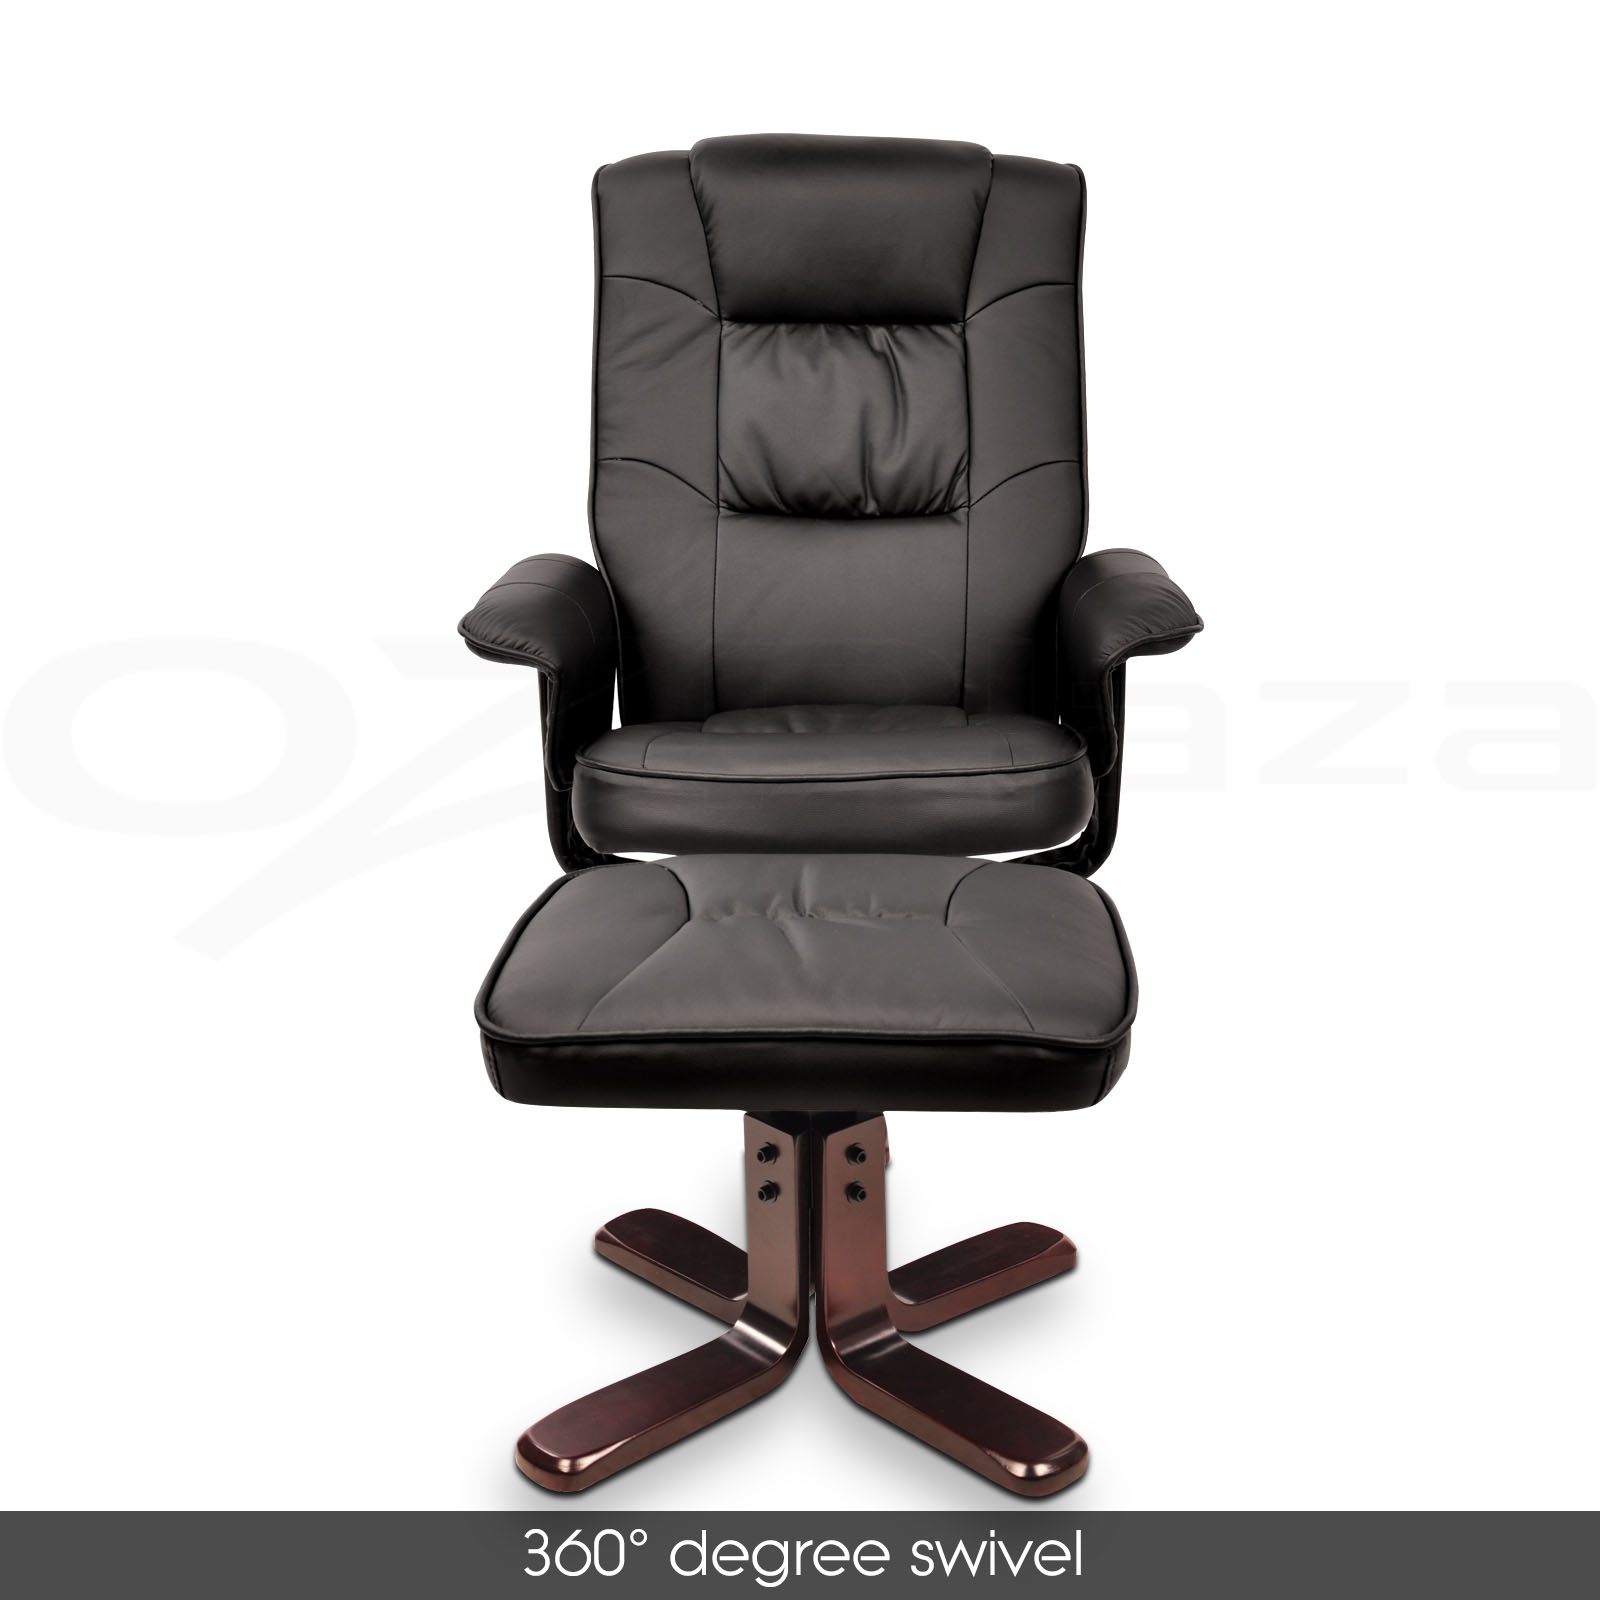 Wood Arm Recliner ~ Pu leather wood arm lounge chair recliner ottoman office